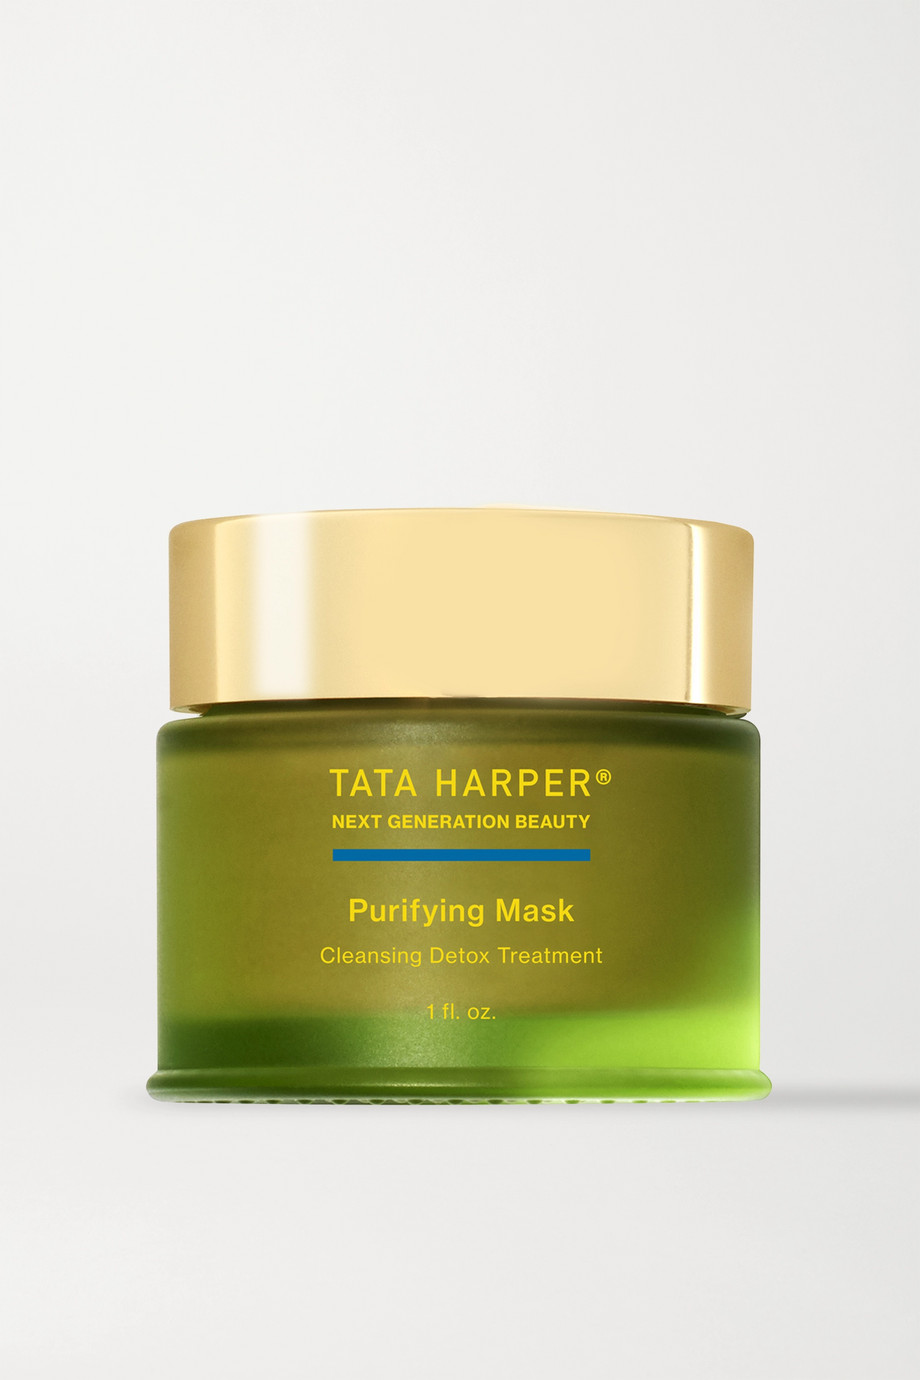 Tata Harper Purifying Mask, 30ml